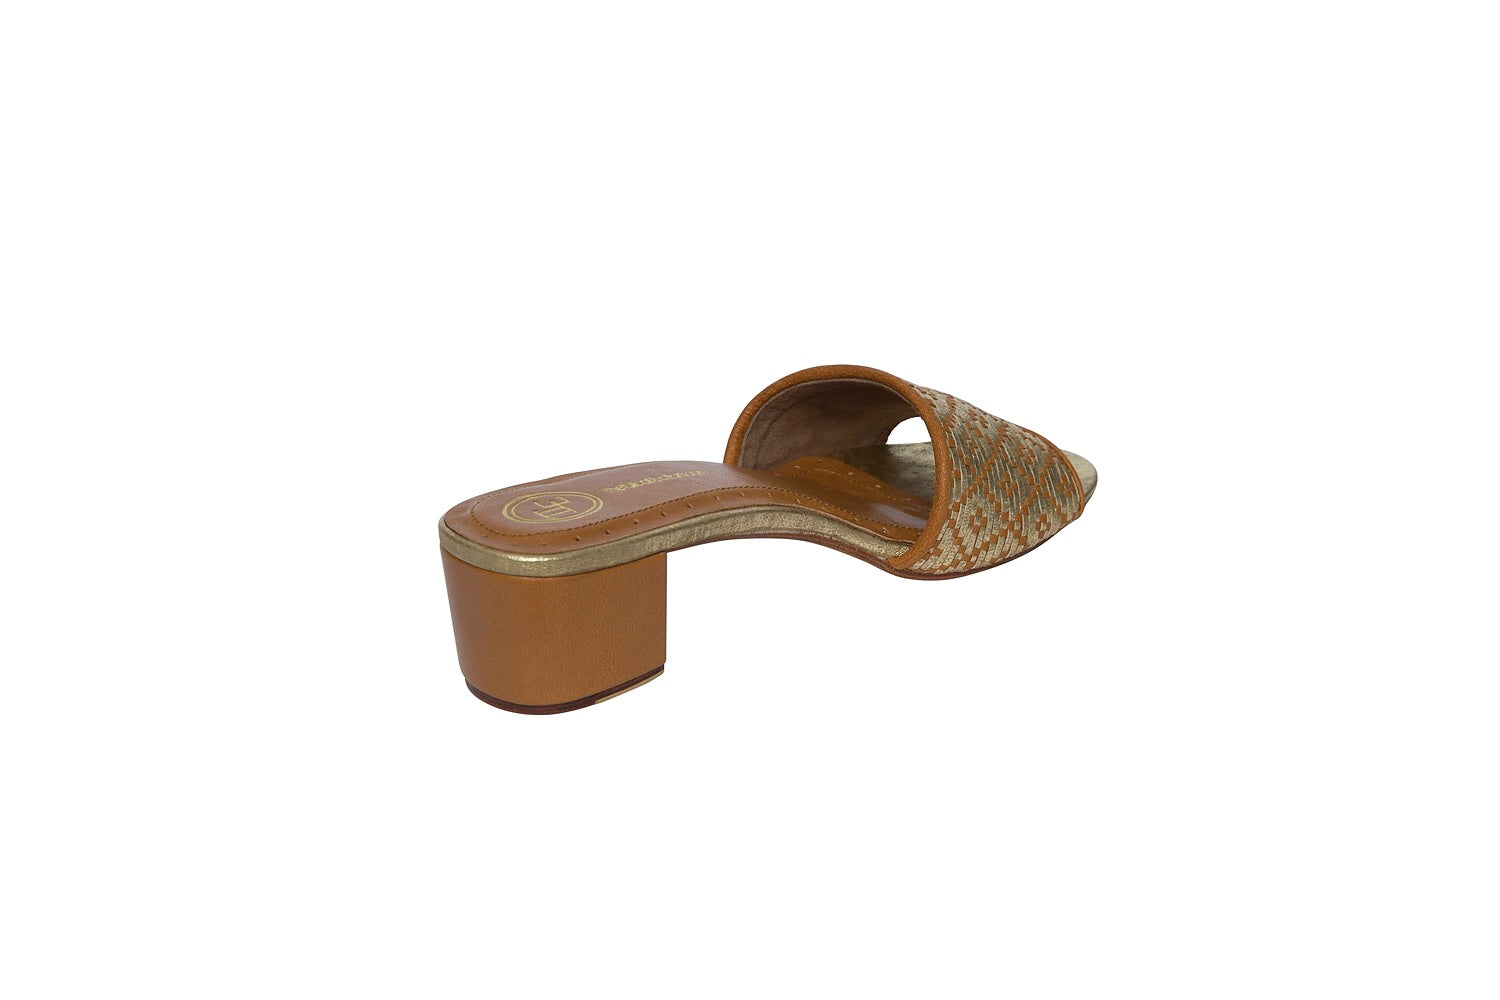 Basketry Mules - Tan/Light Gold